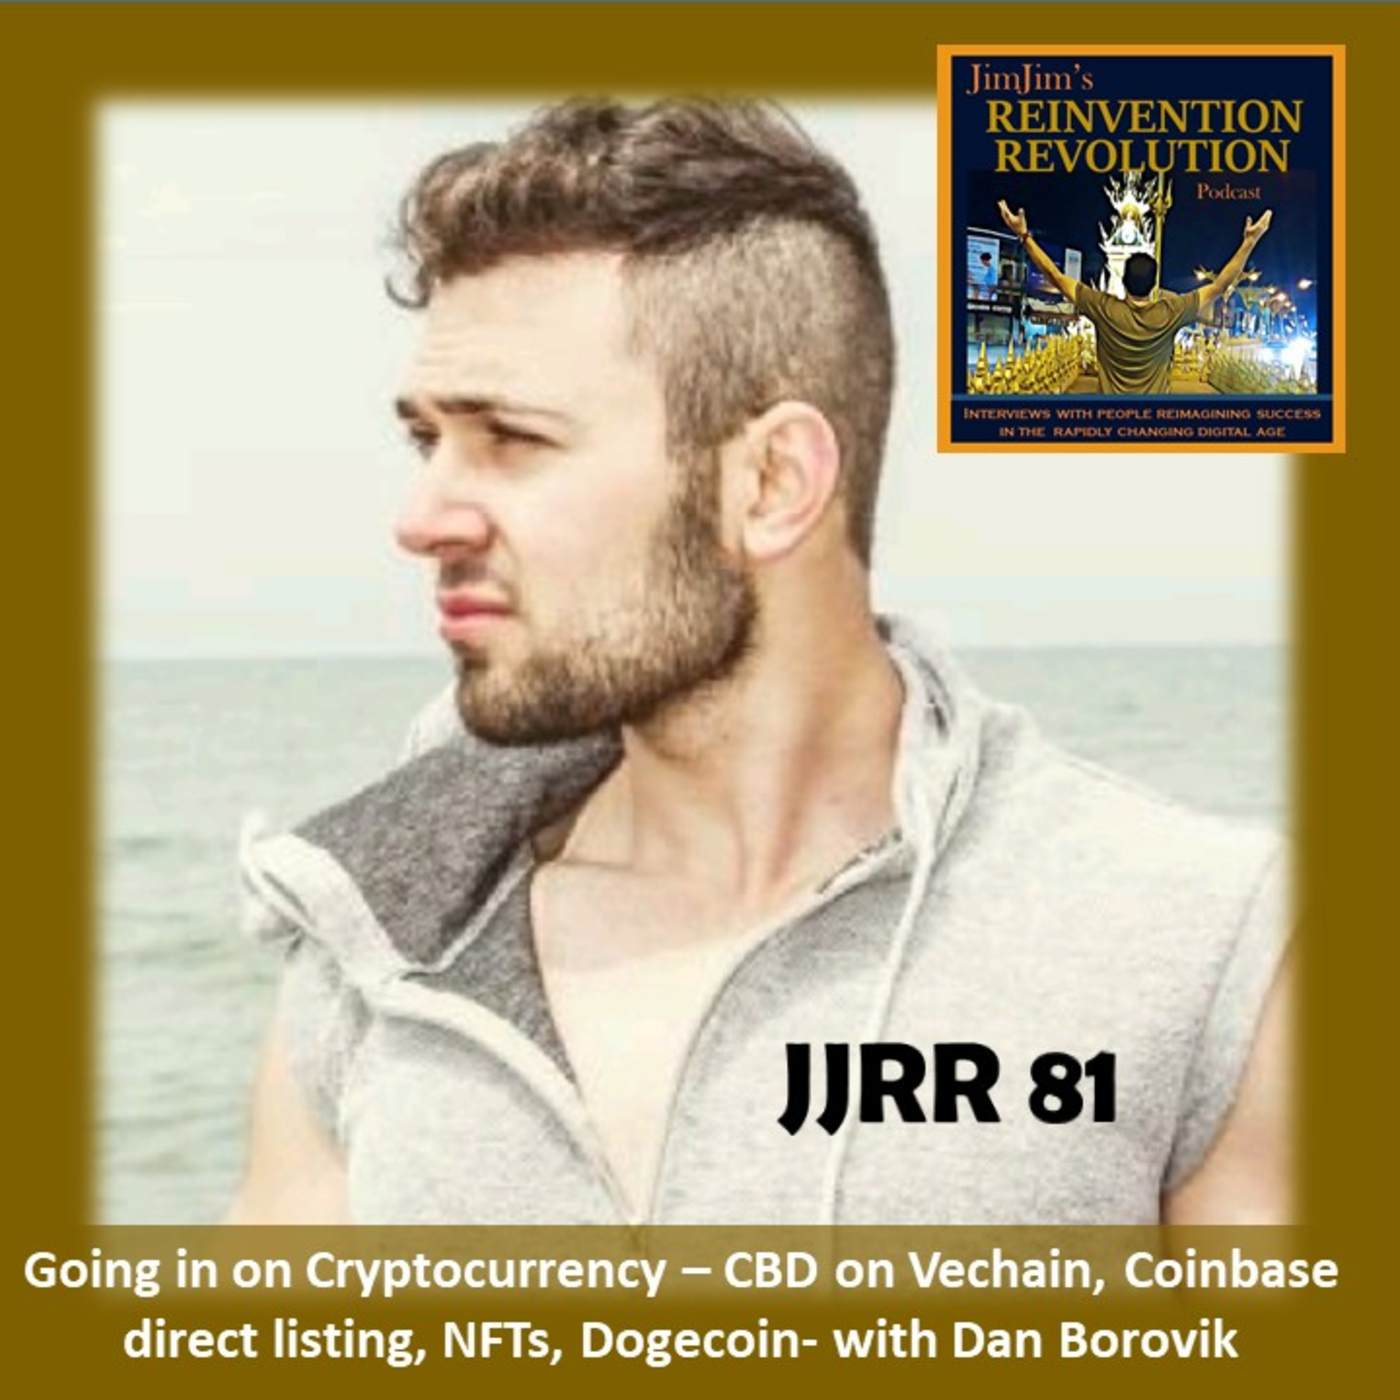 JJRR 81 Going in on Cryptocurrency – CBD on Vechain, Coinbase direct listing, NFTs, Dogecoin – with Dan Borovik